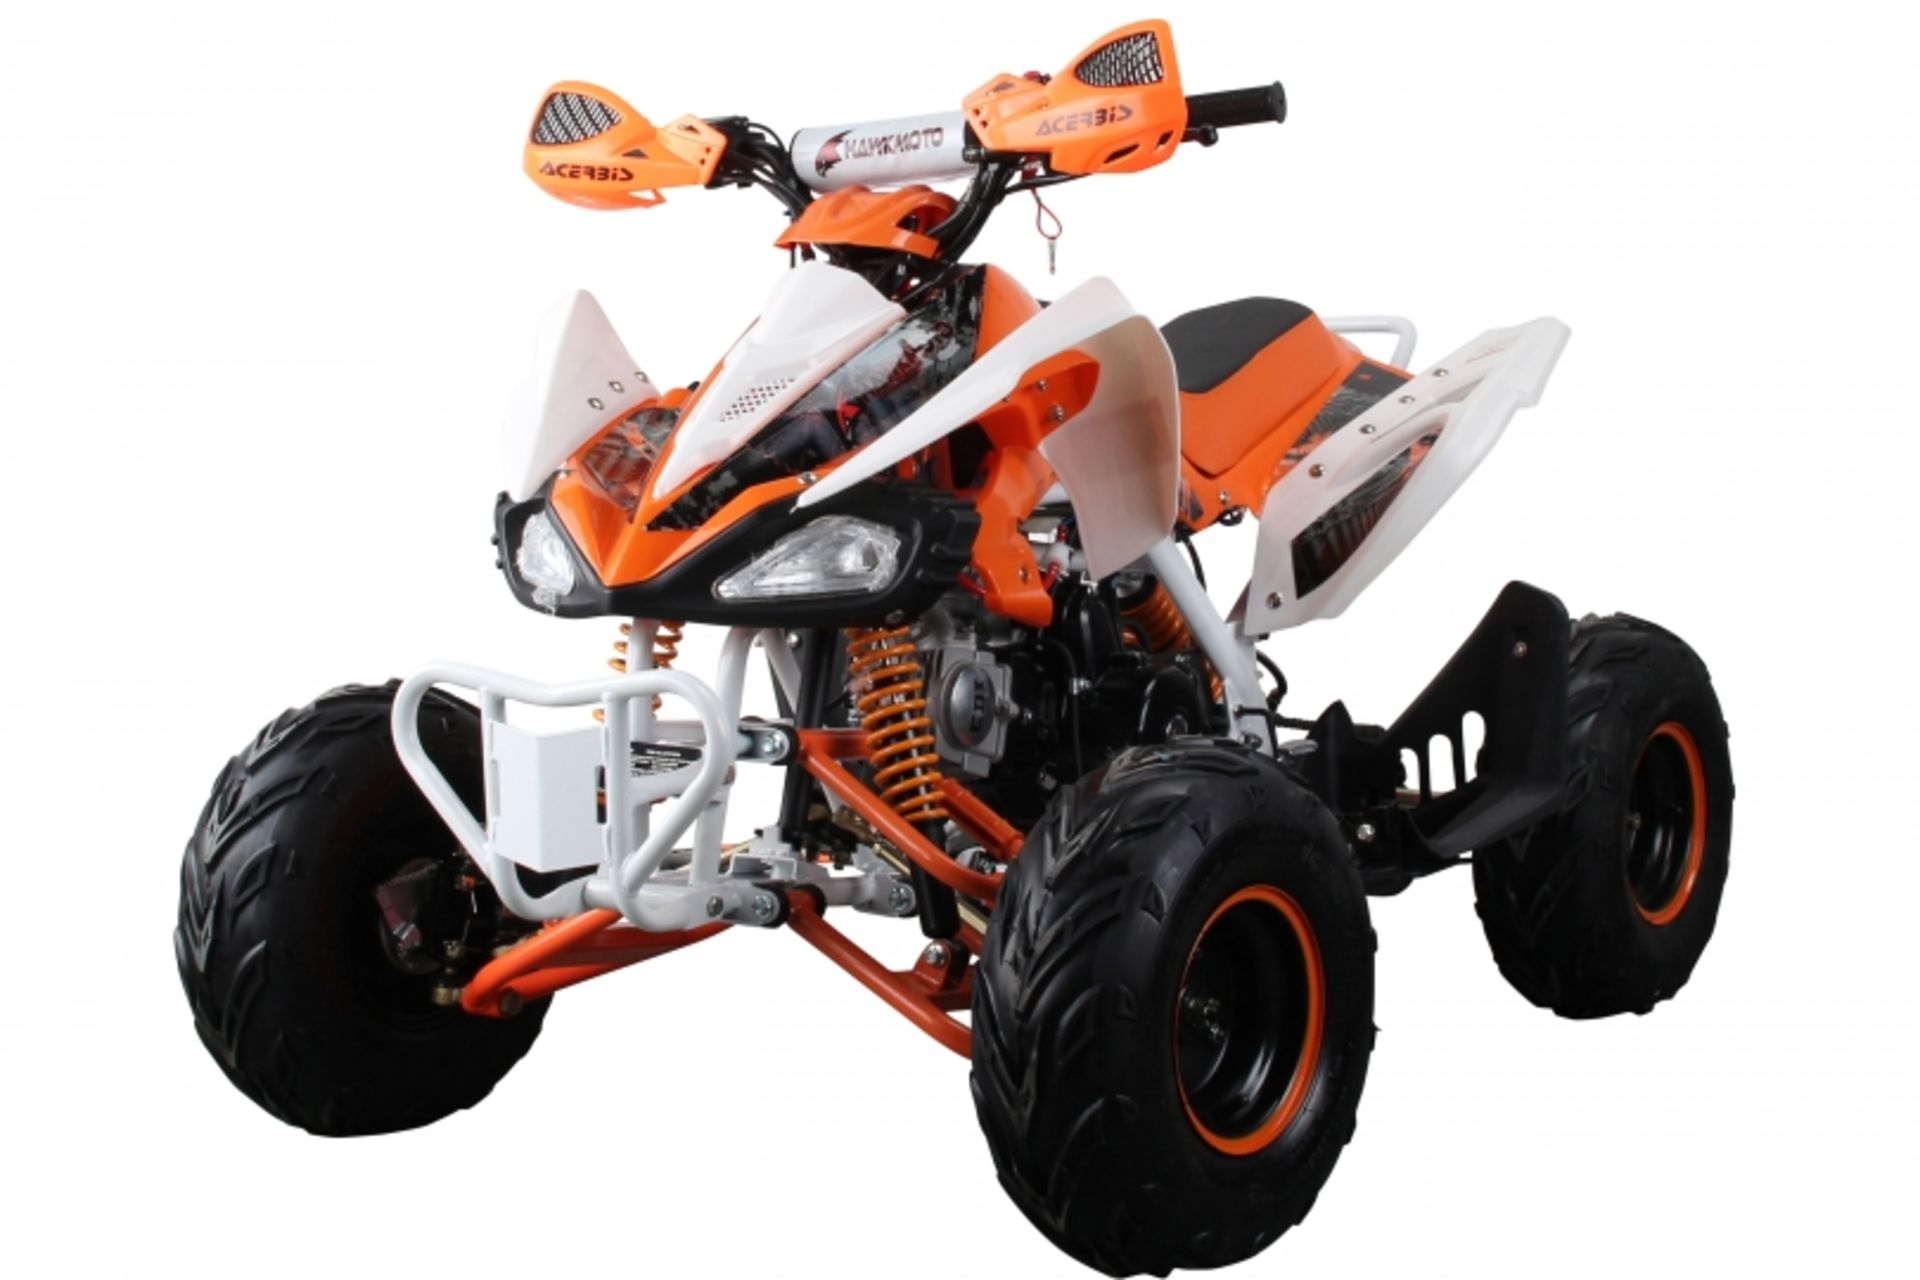 Lot 23533 - V Brand New 125cc Interceptor SV2 4 Stroke Quad Bike With Reverse Gear - Double Front Suspension/